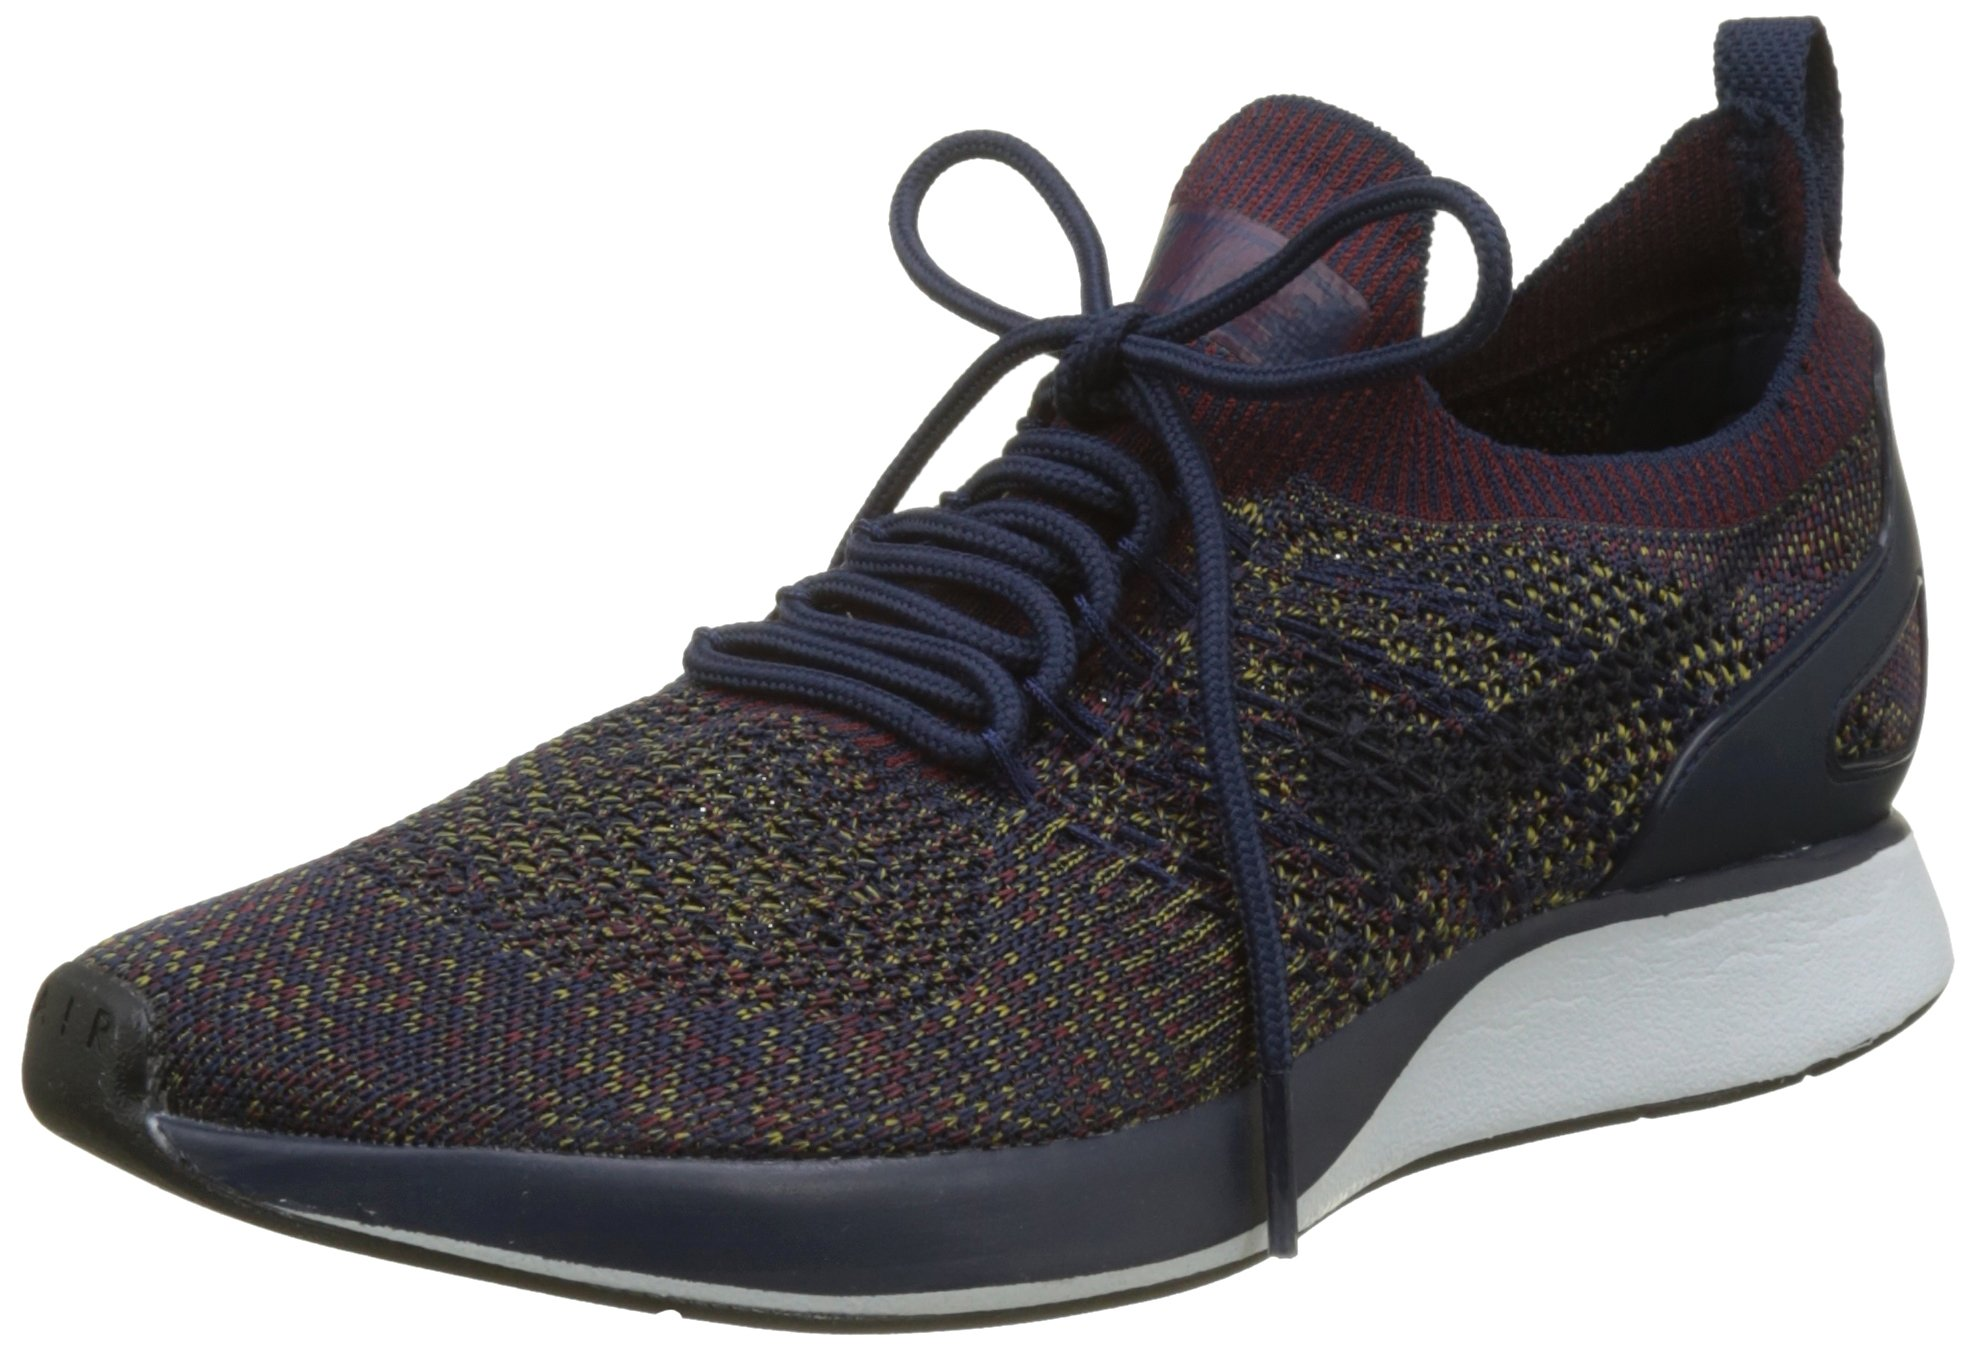 Nike Mens Air Zoom Mariah Flyknit Racer College Navy/Bordeaux-Desert Moss (12 D (M) US) by NIKE